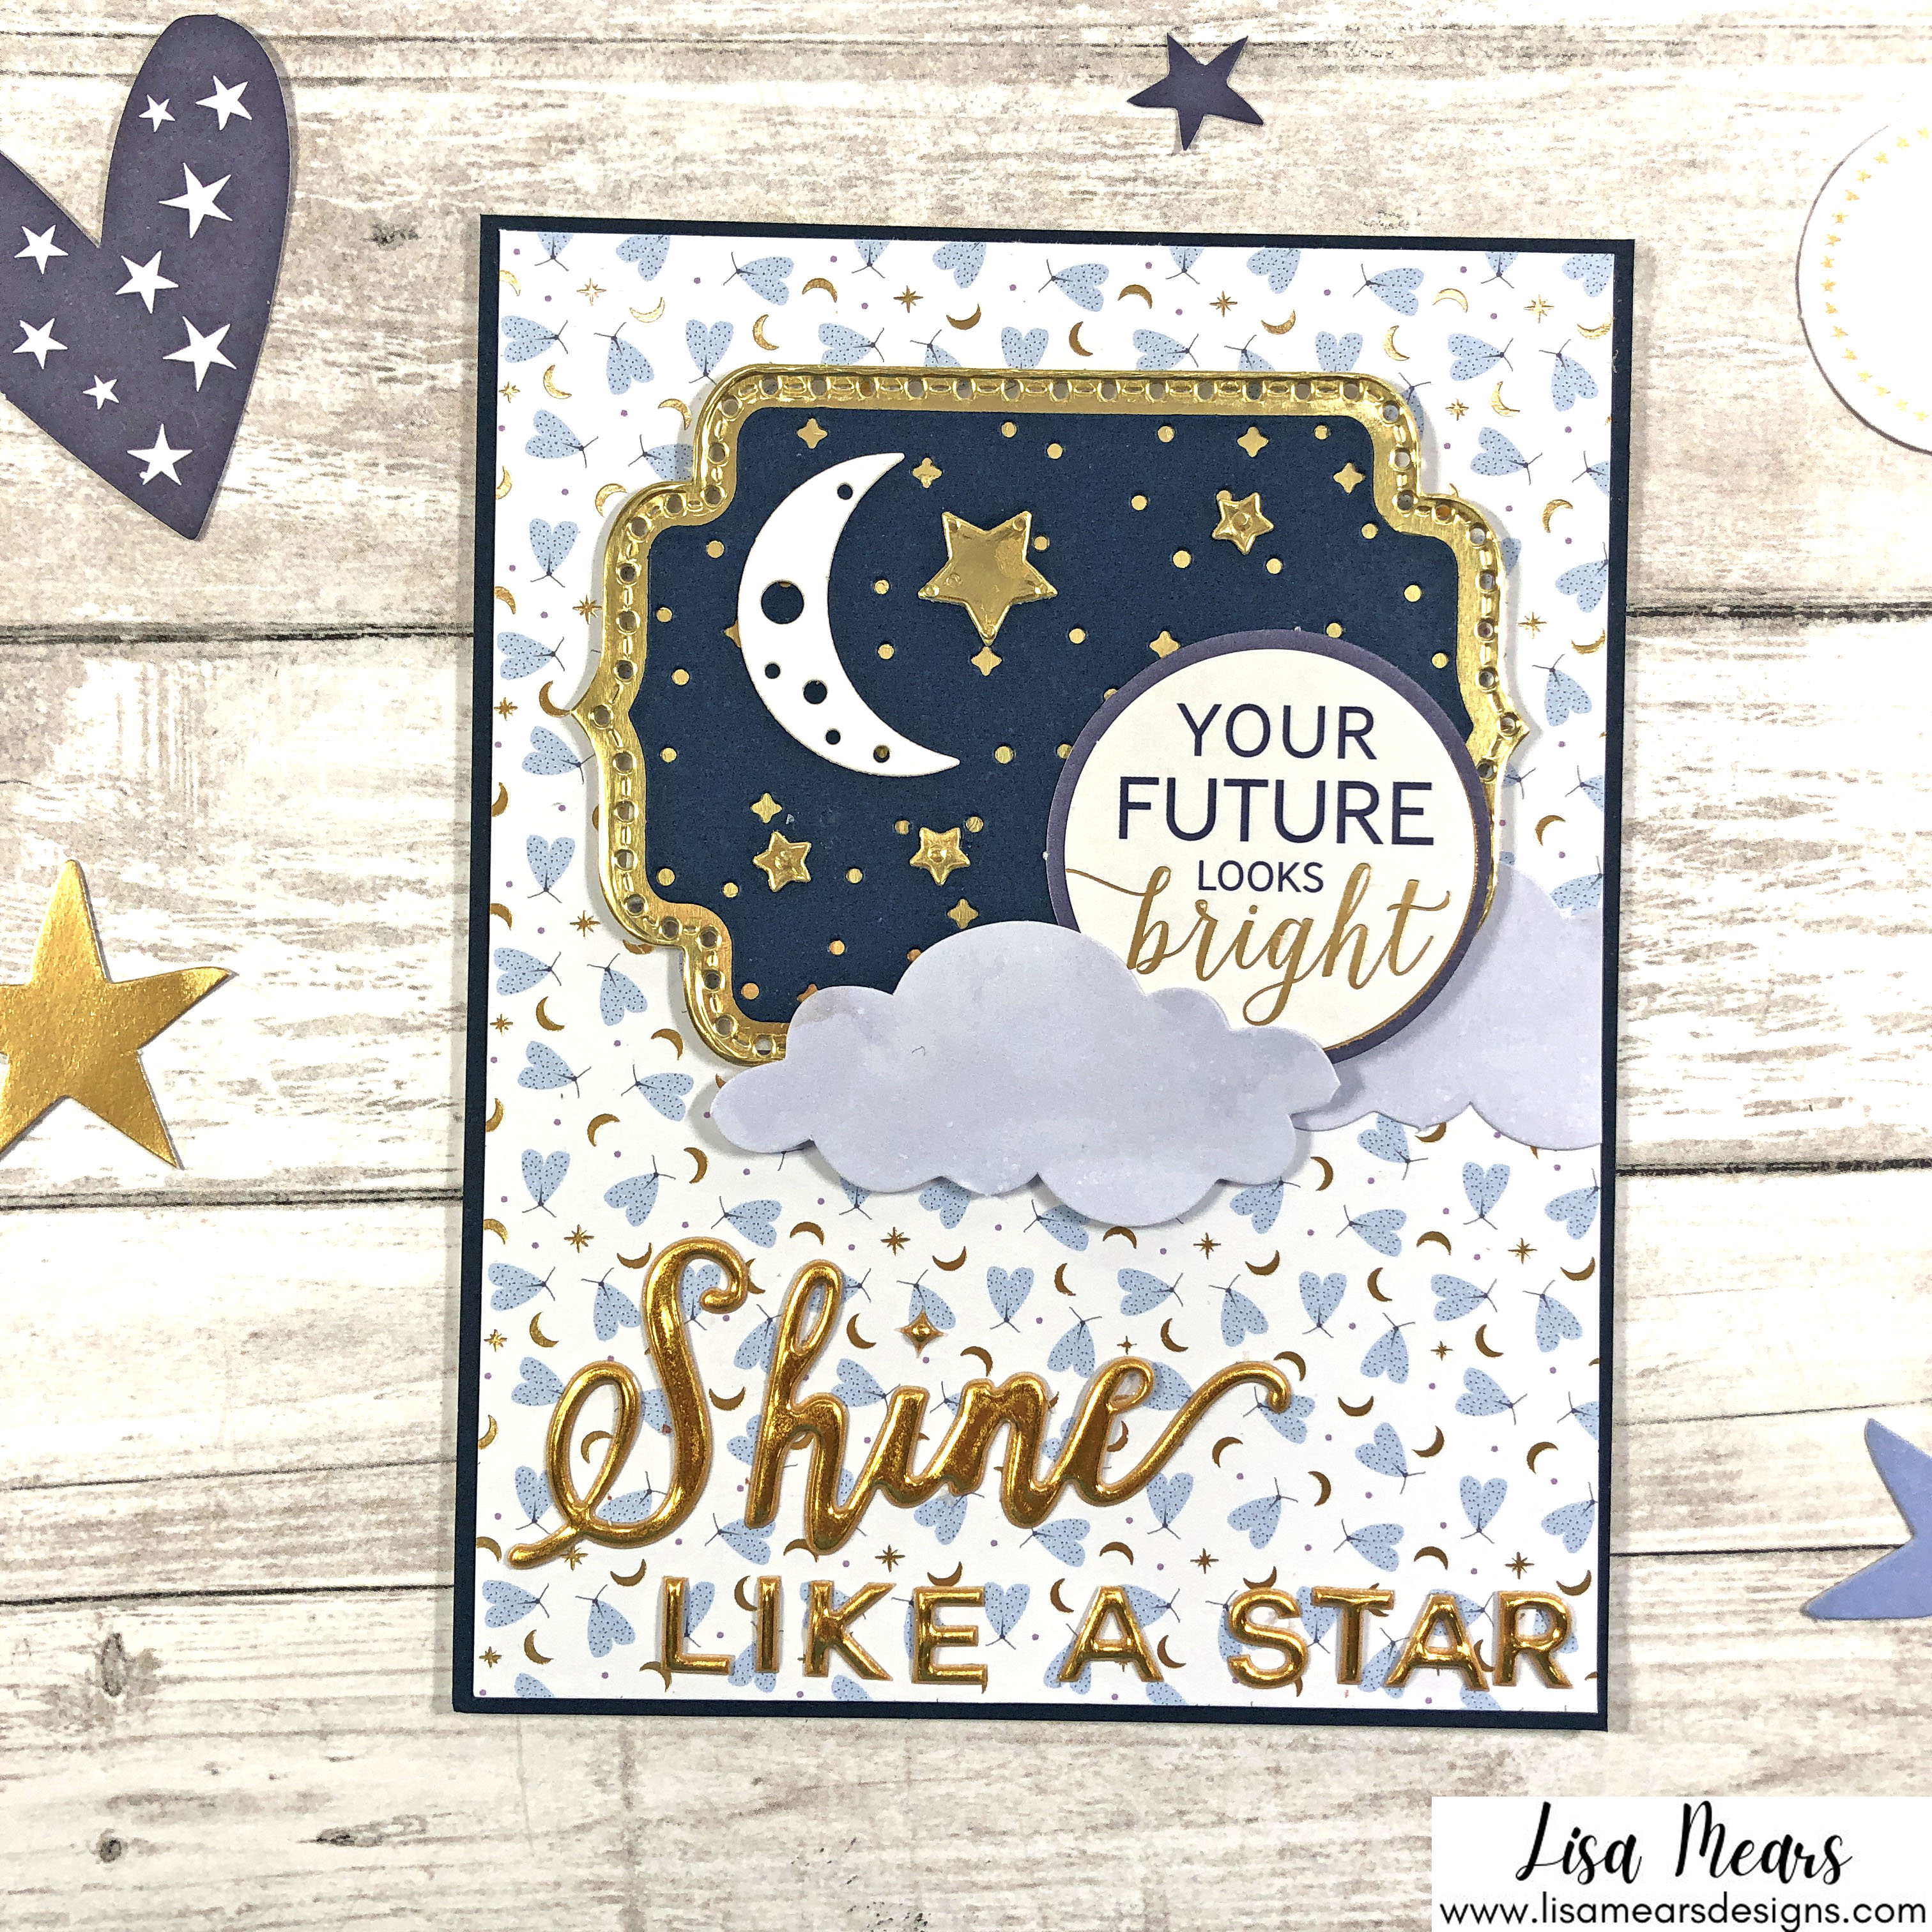 Spellbinders October 2021 Card Kit - You are Stellar! You're future looks bright